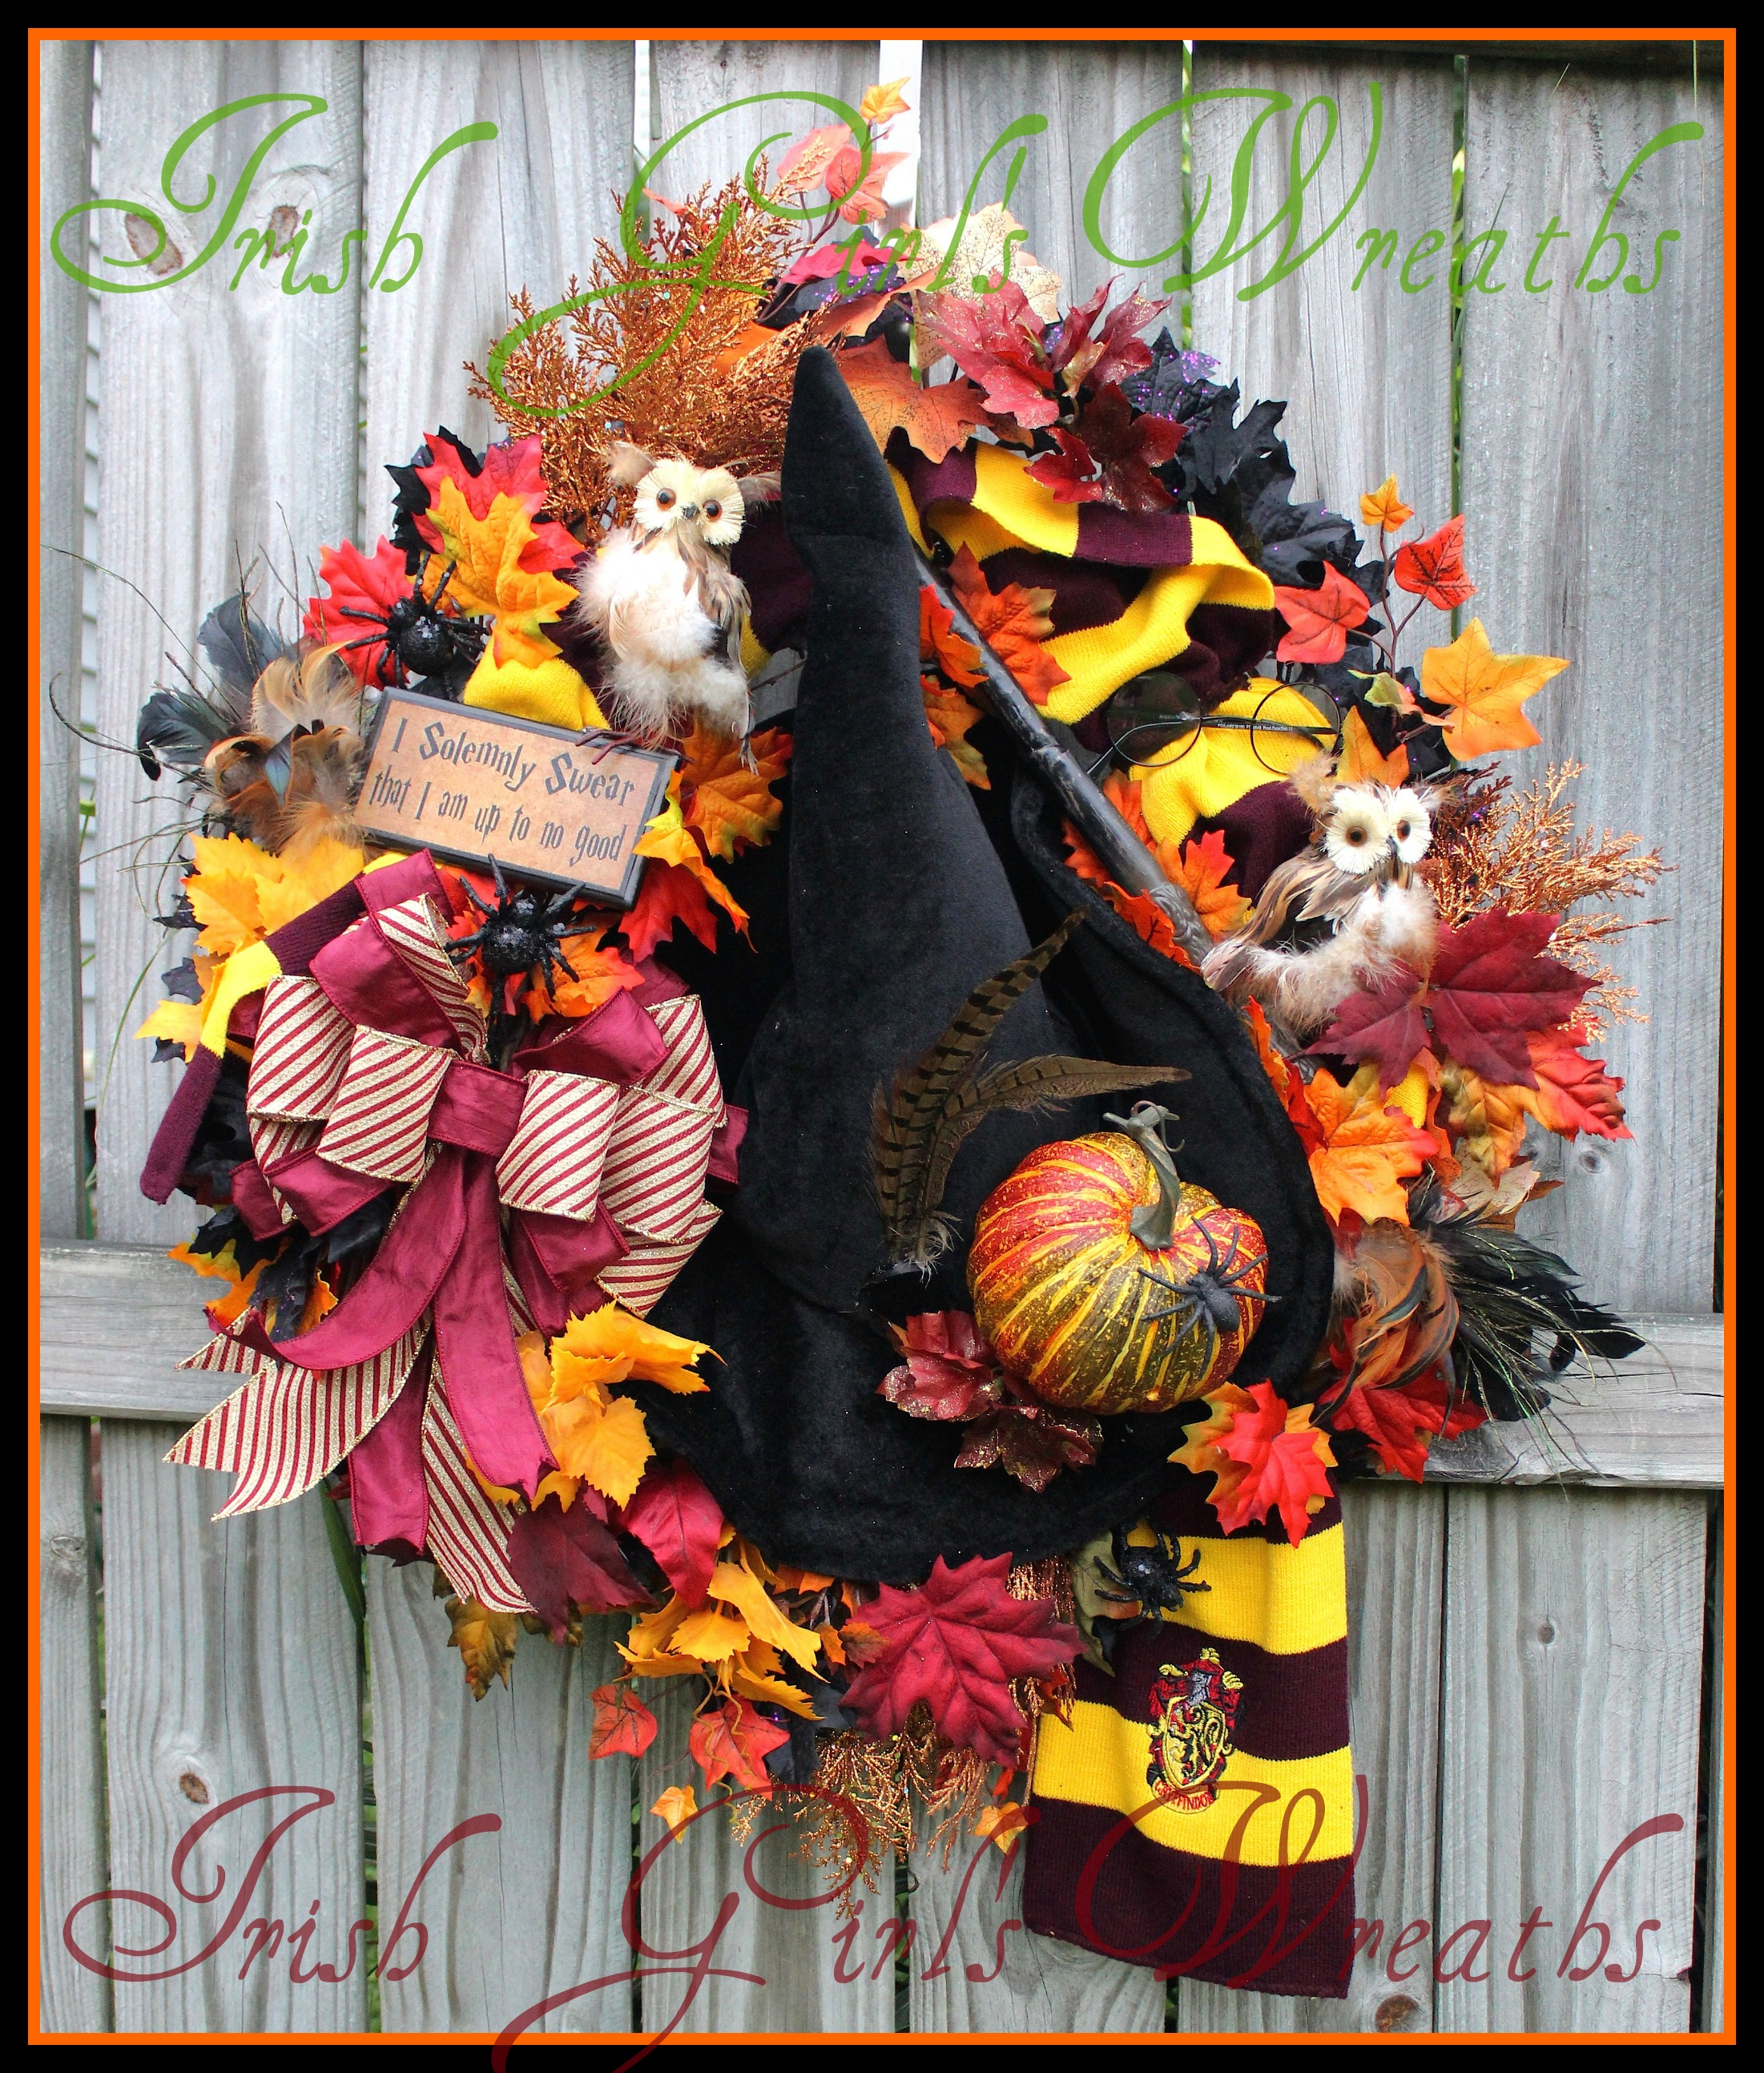 XL Hogwarts Harry Potter Halloween Wreath, Gryffindor Scarf, Owl, Wizard, I Solemnly Swear I'm Up to No Good plaque